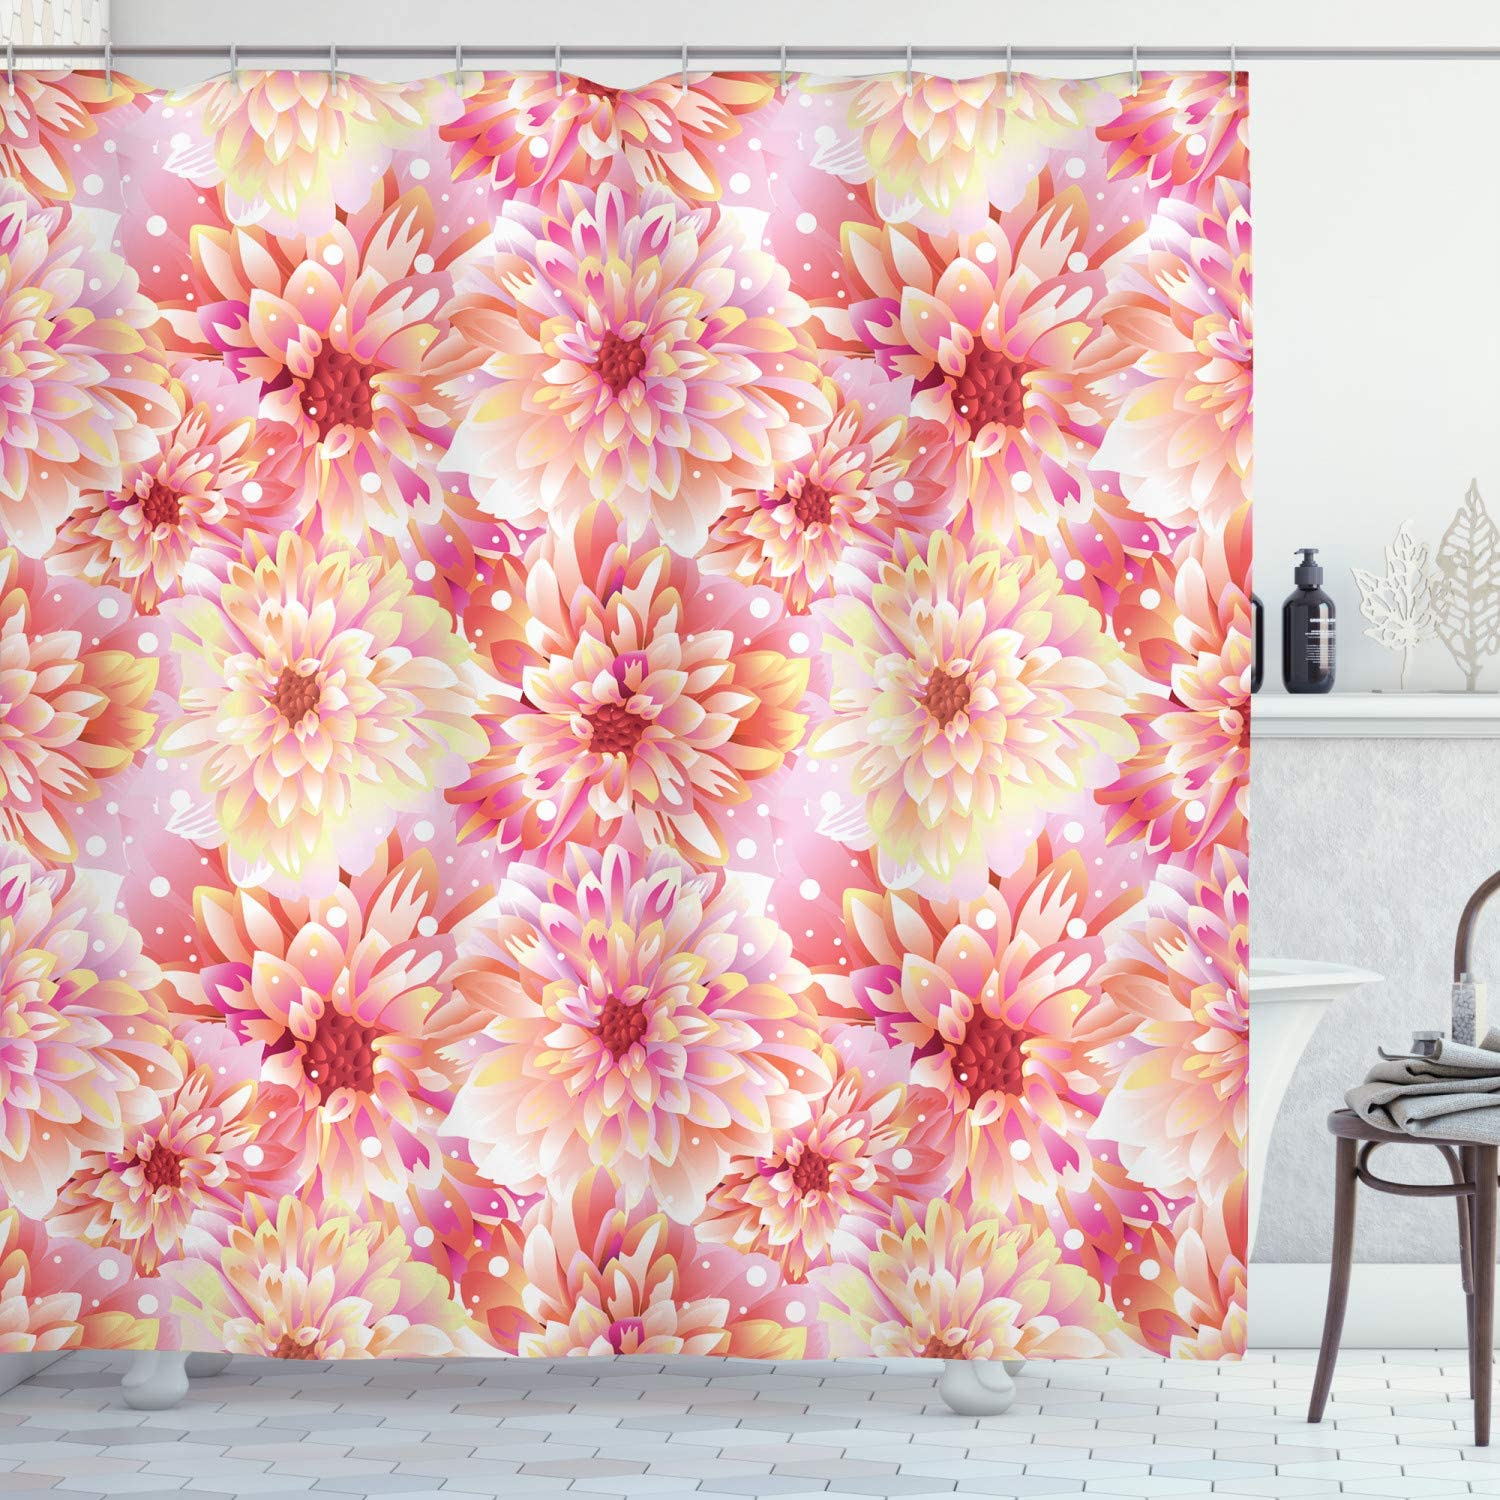 Ambesonne Dahlia Flower Shower Curtain, Double Apple Blossom with Overlap Axis and Twist Bluntly Circle Pompons, Cloth Fabric Bathroom Decor Set with Hooks, 70